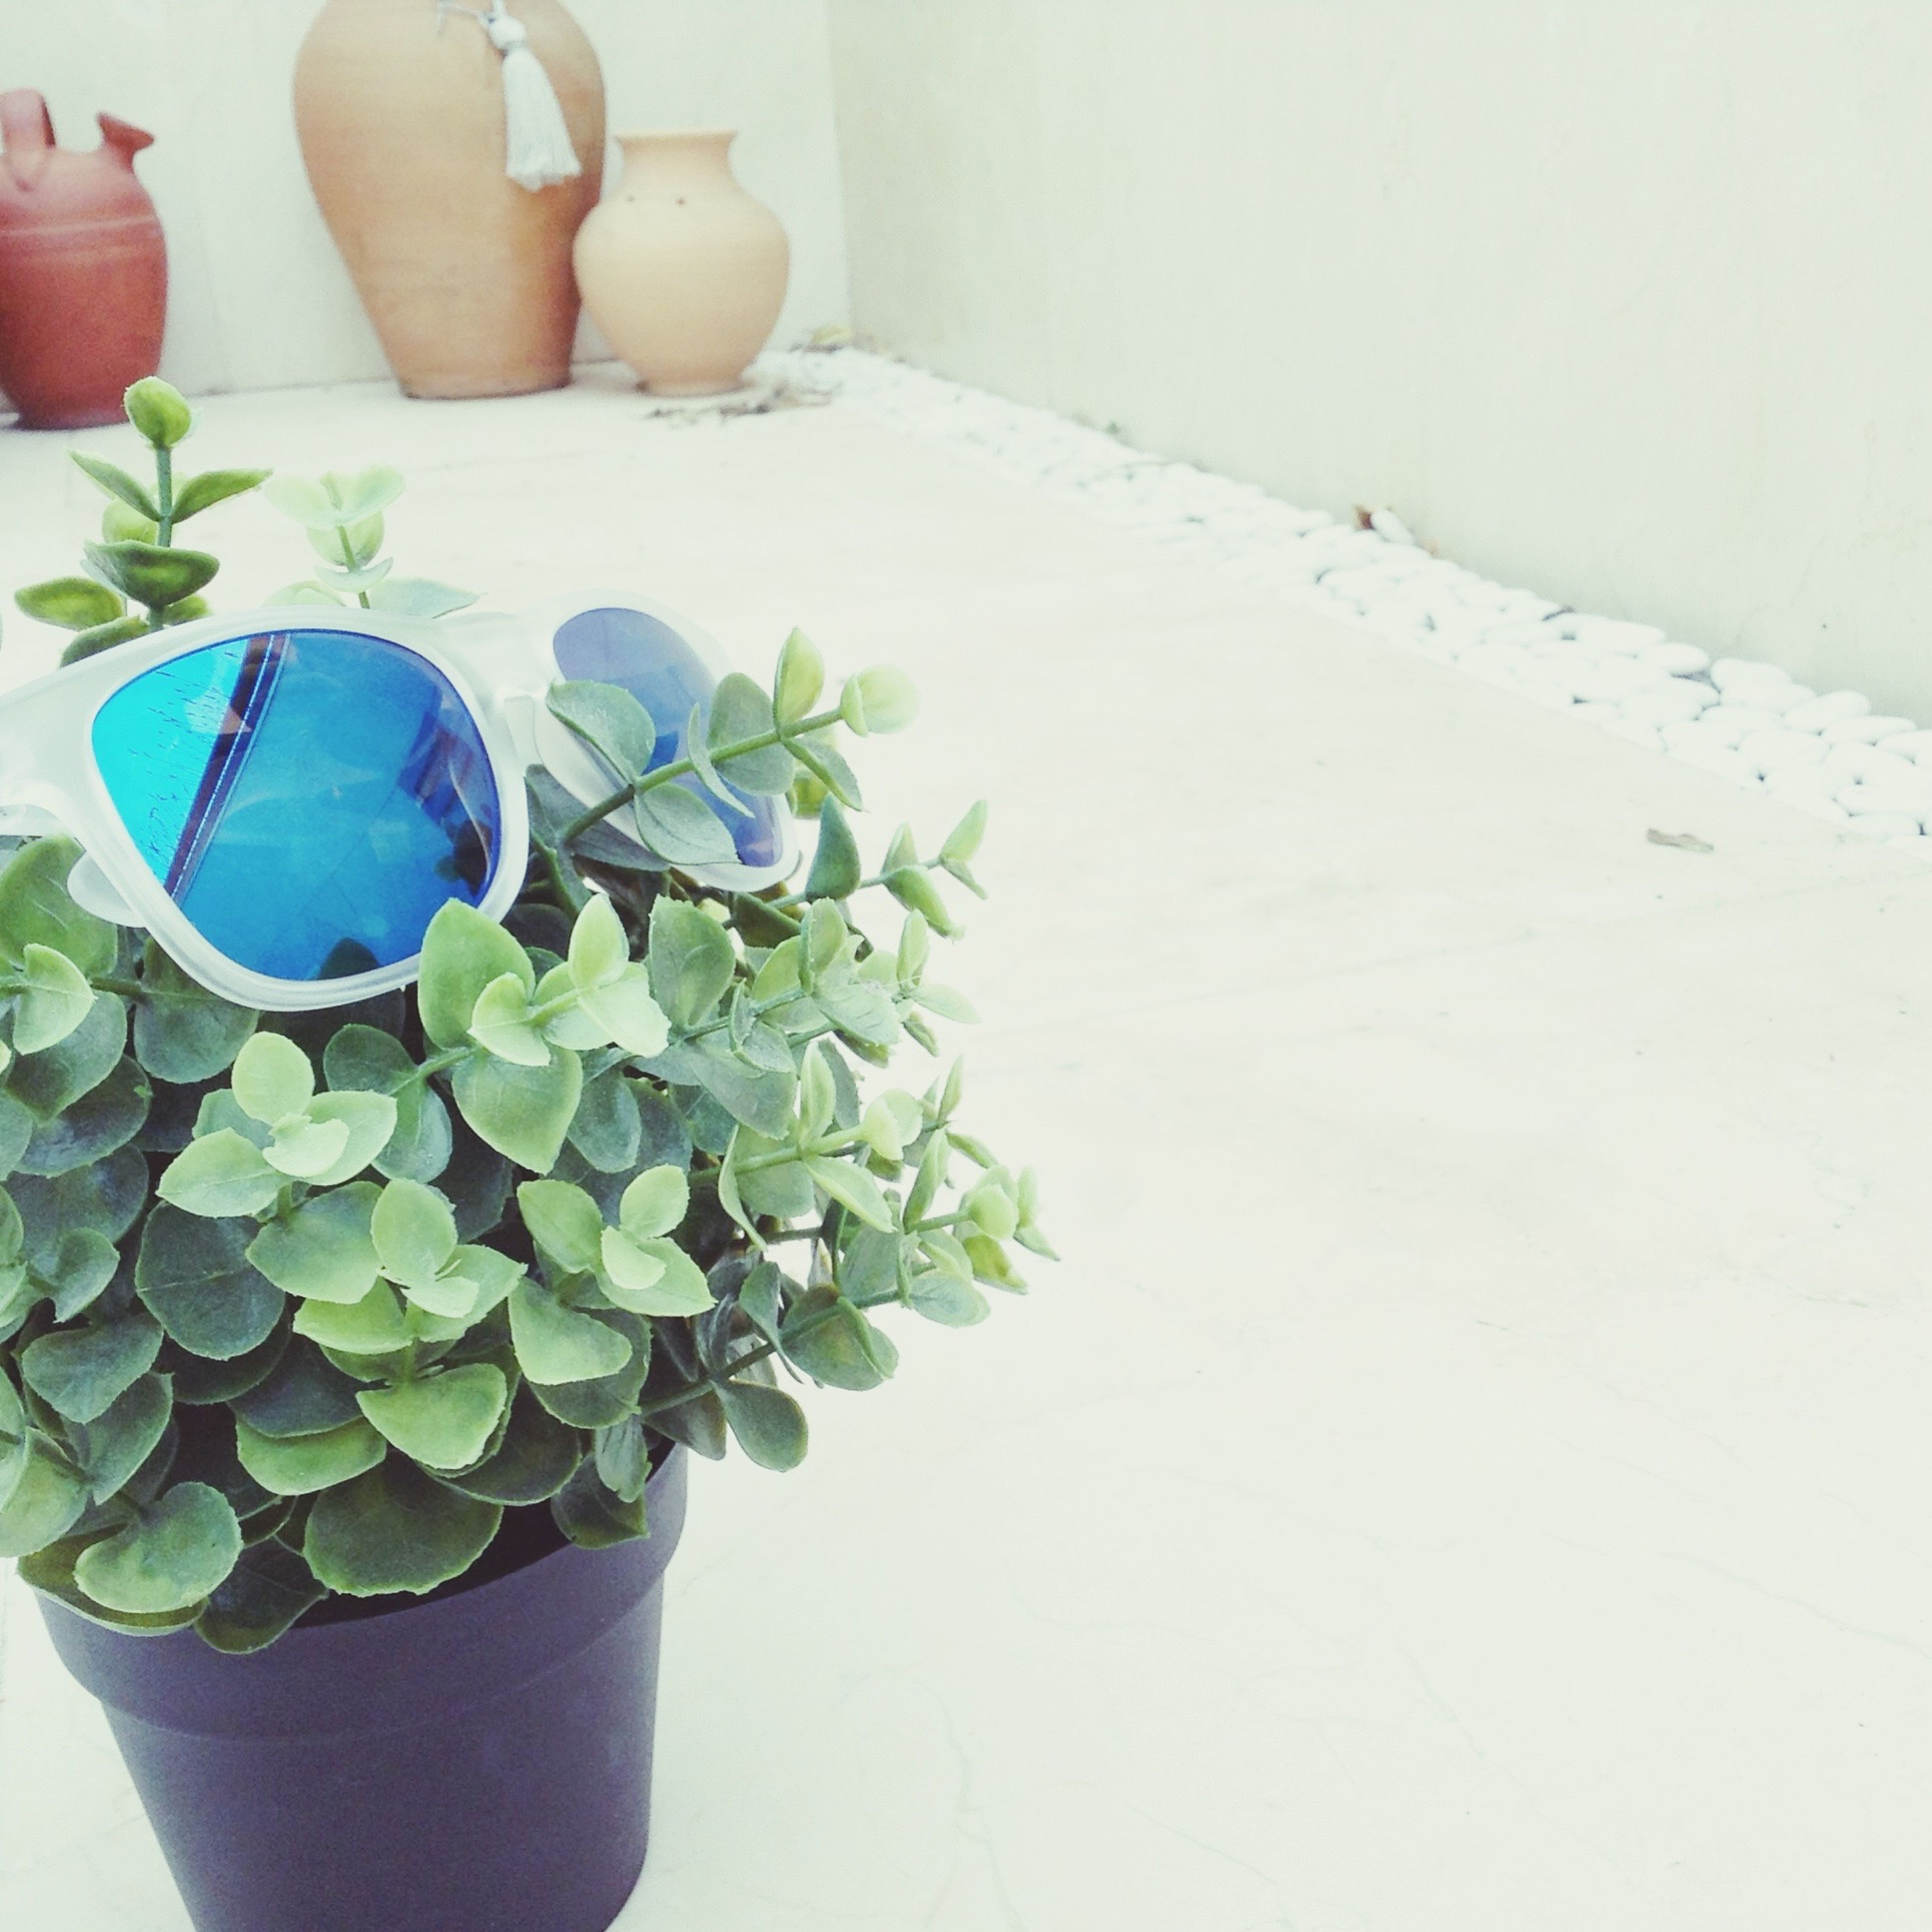 potted plant, plant, growth, leaf, close-up, wall - building feature, indoors, freshness, flower, flower pot, fragility, nature, day, botany, houseplant, green color, no people, patio, house plant, plant life, geometric shape, beauty in nature